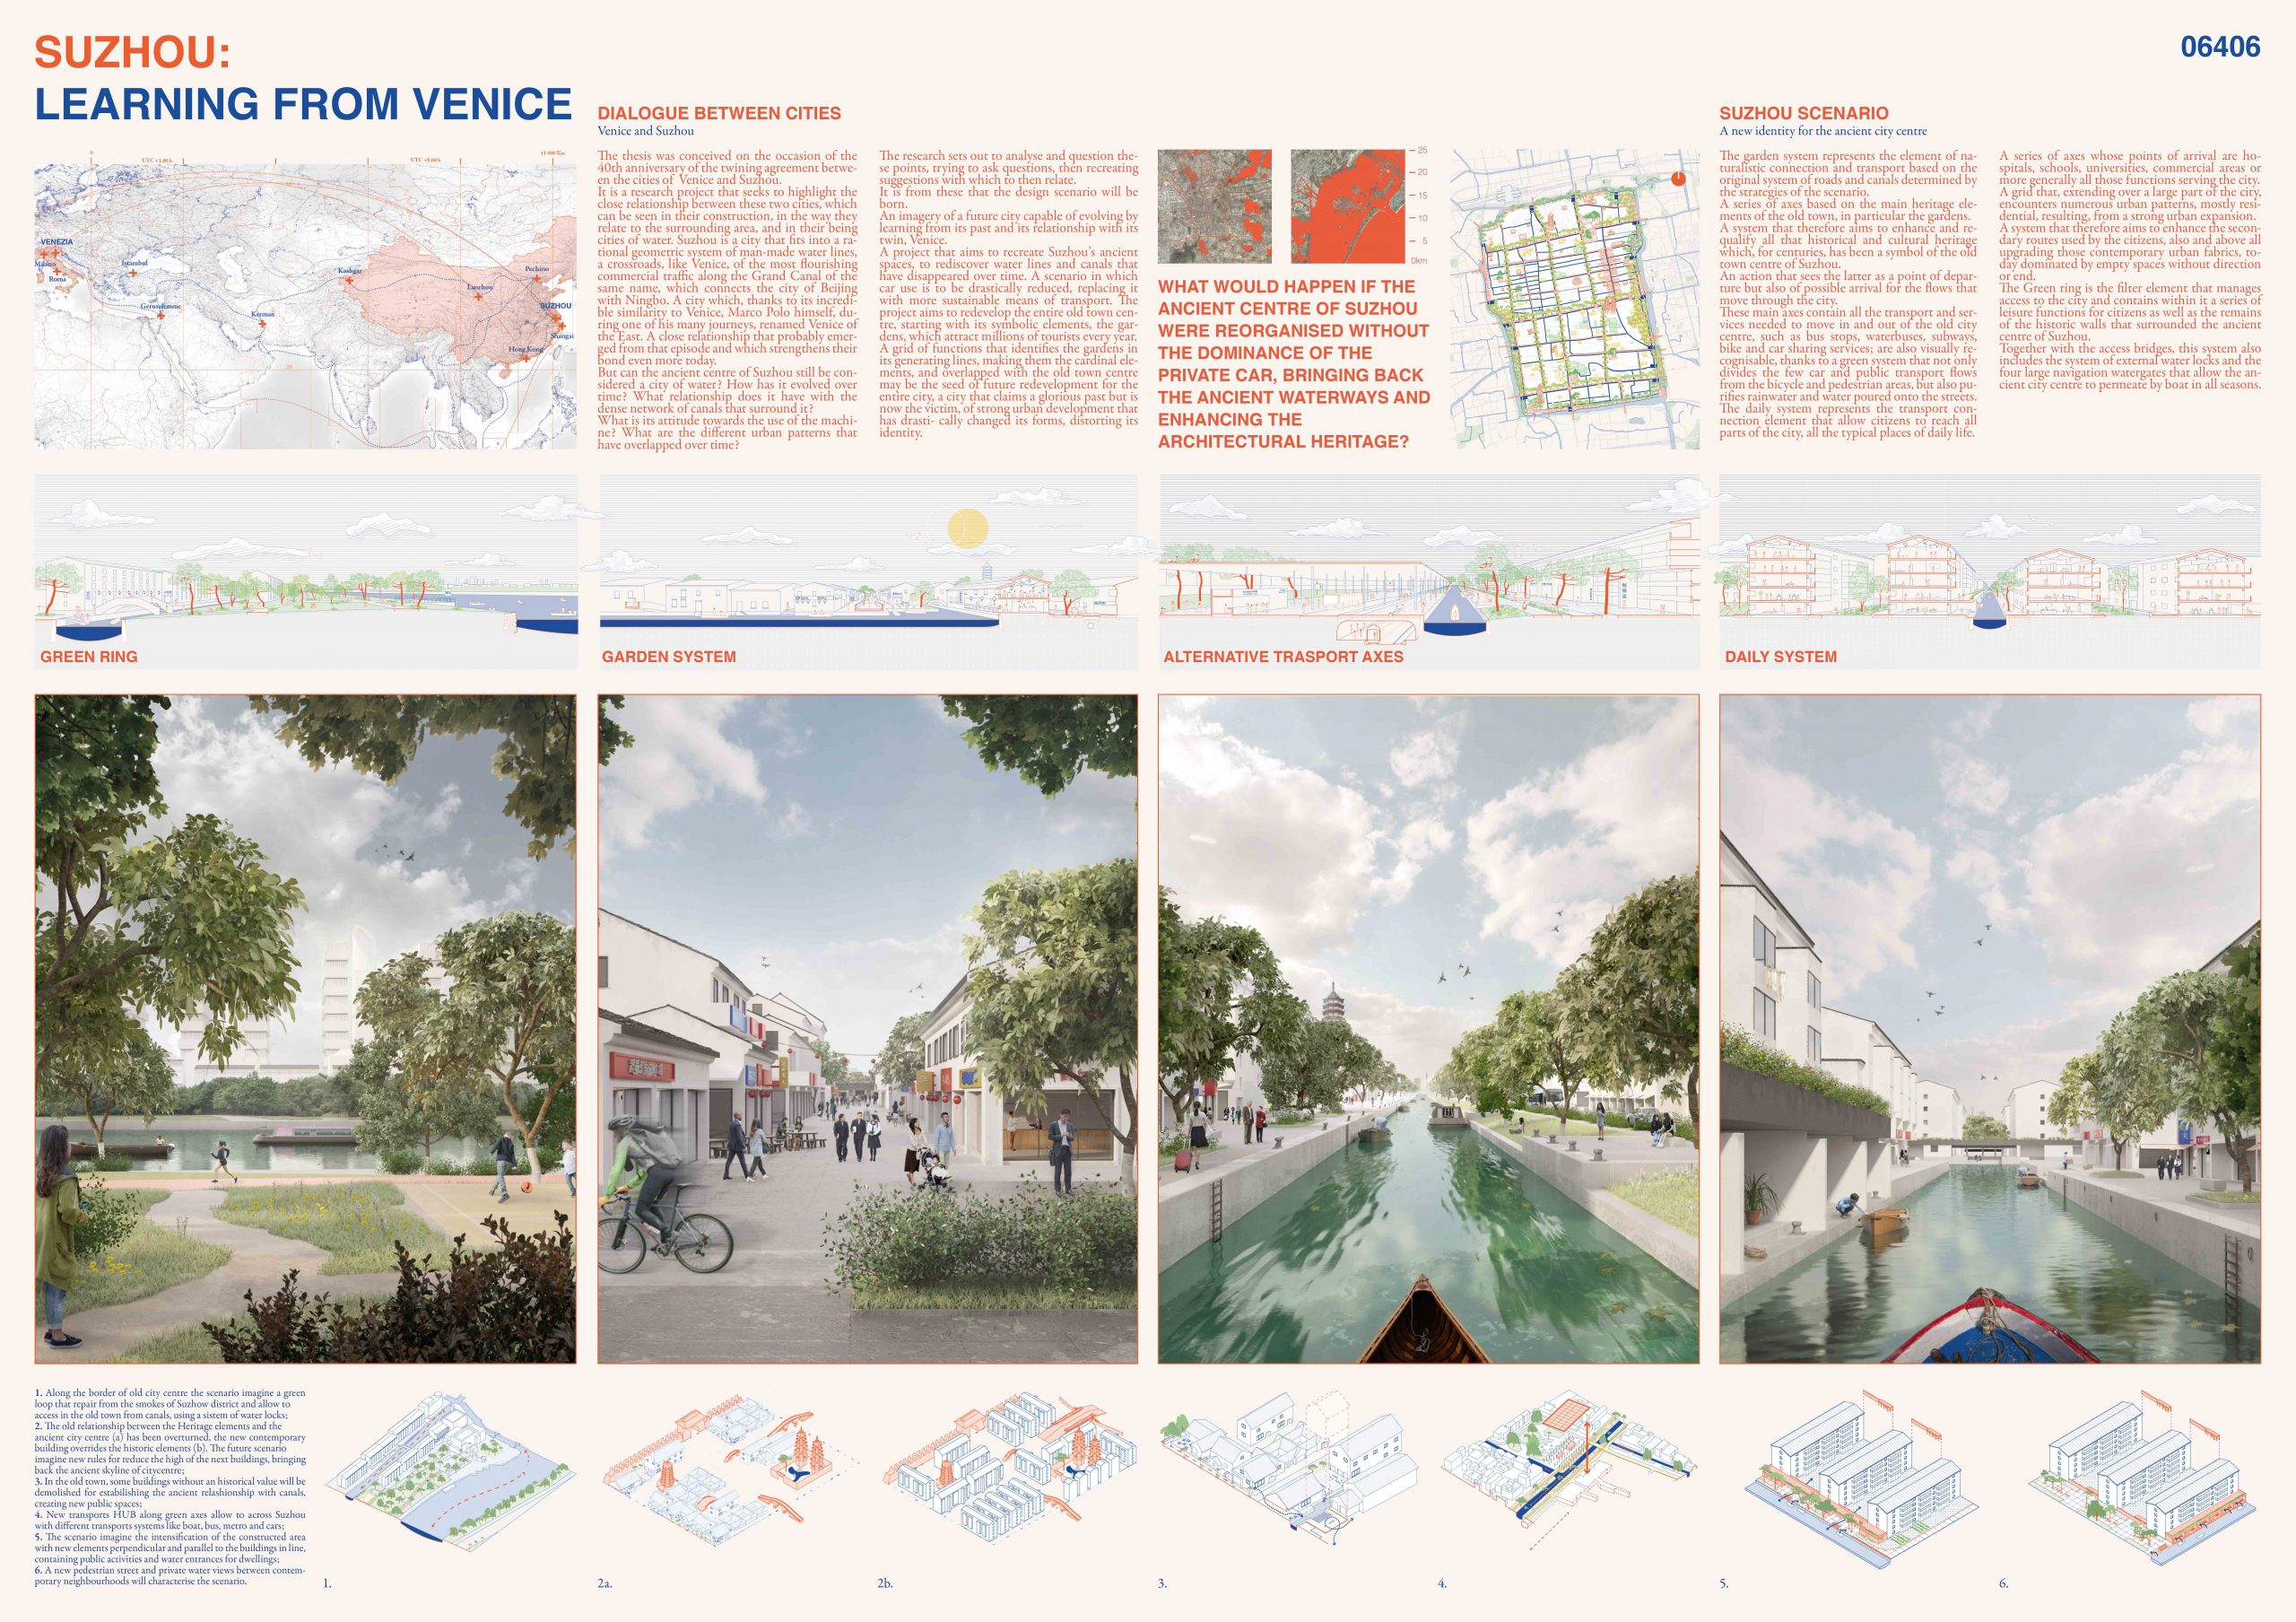 Suzhou: Learning from Venice Board